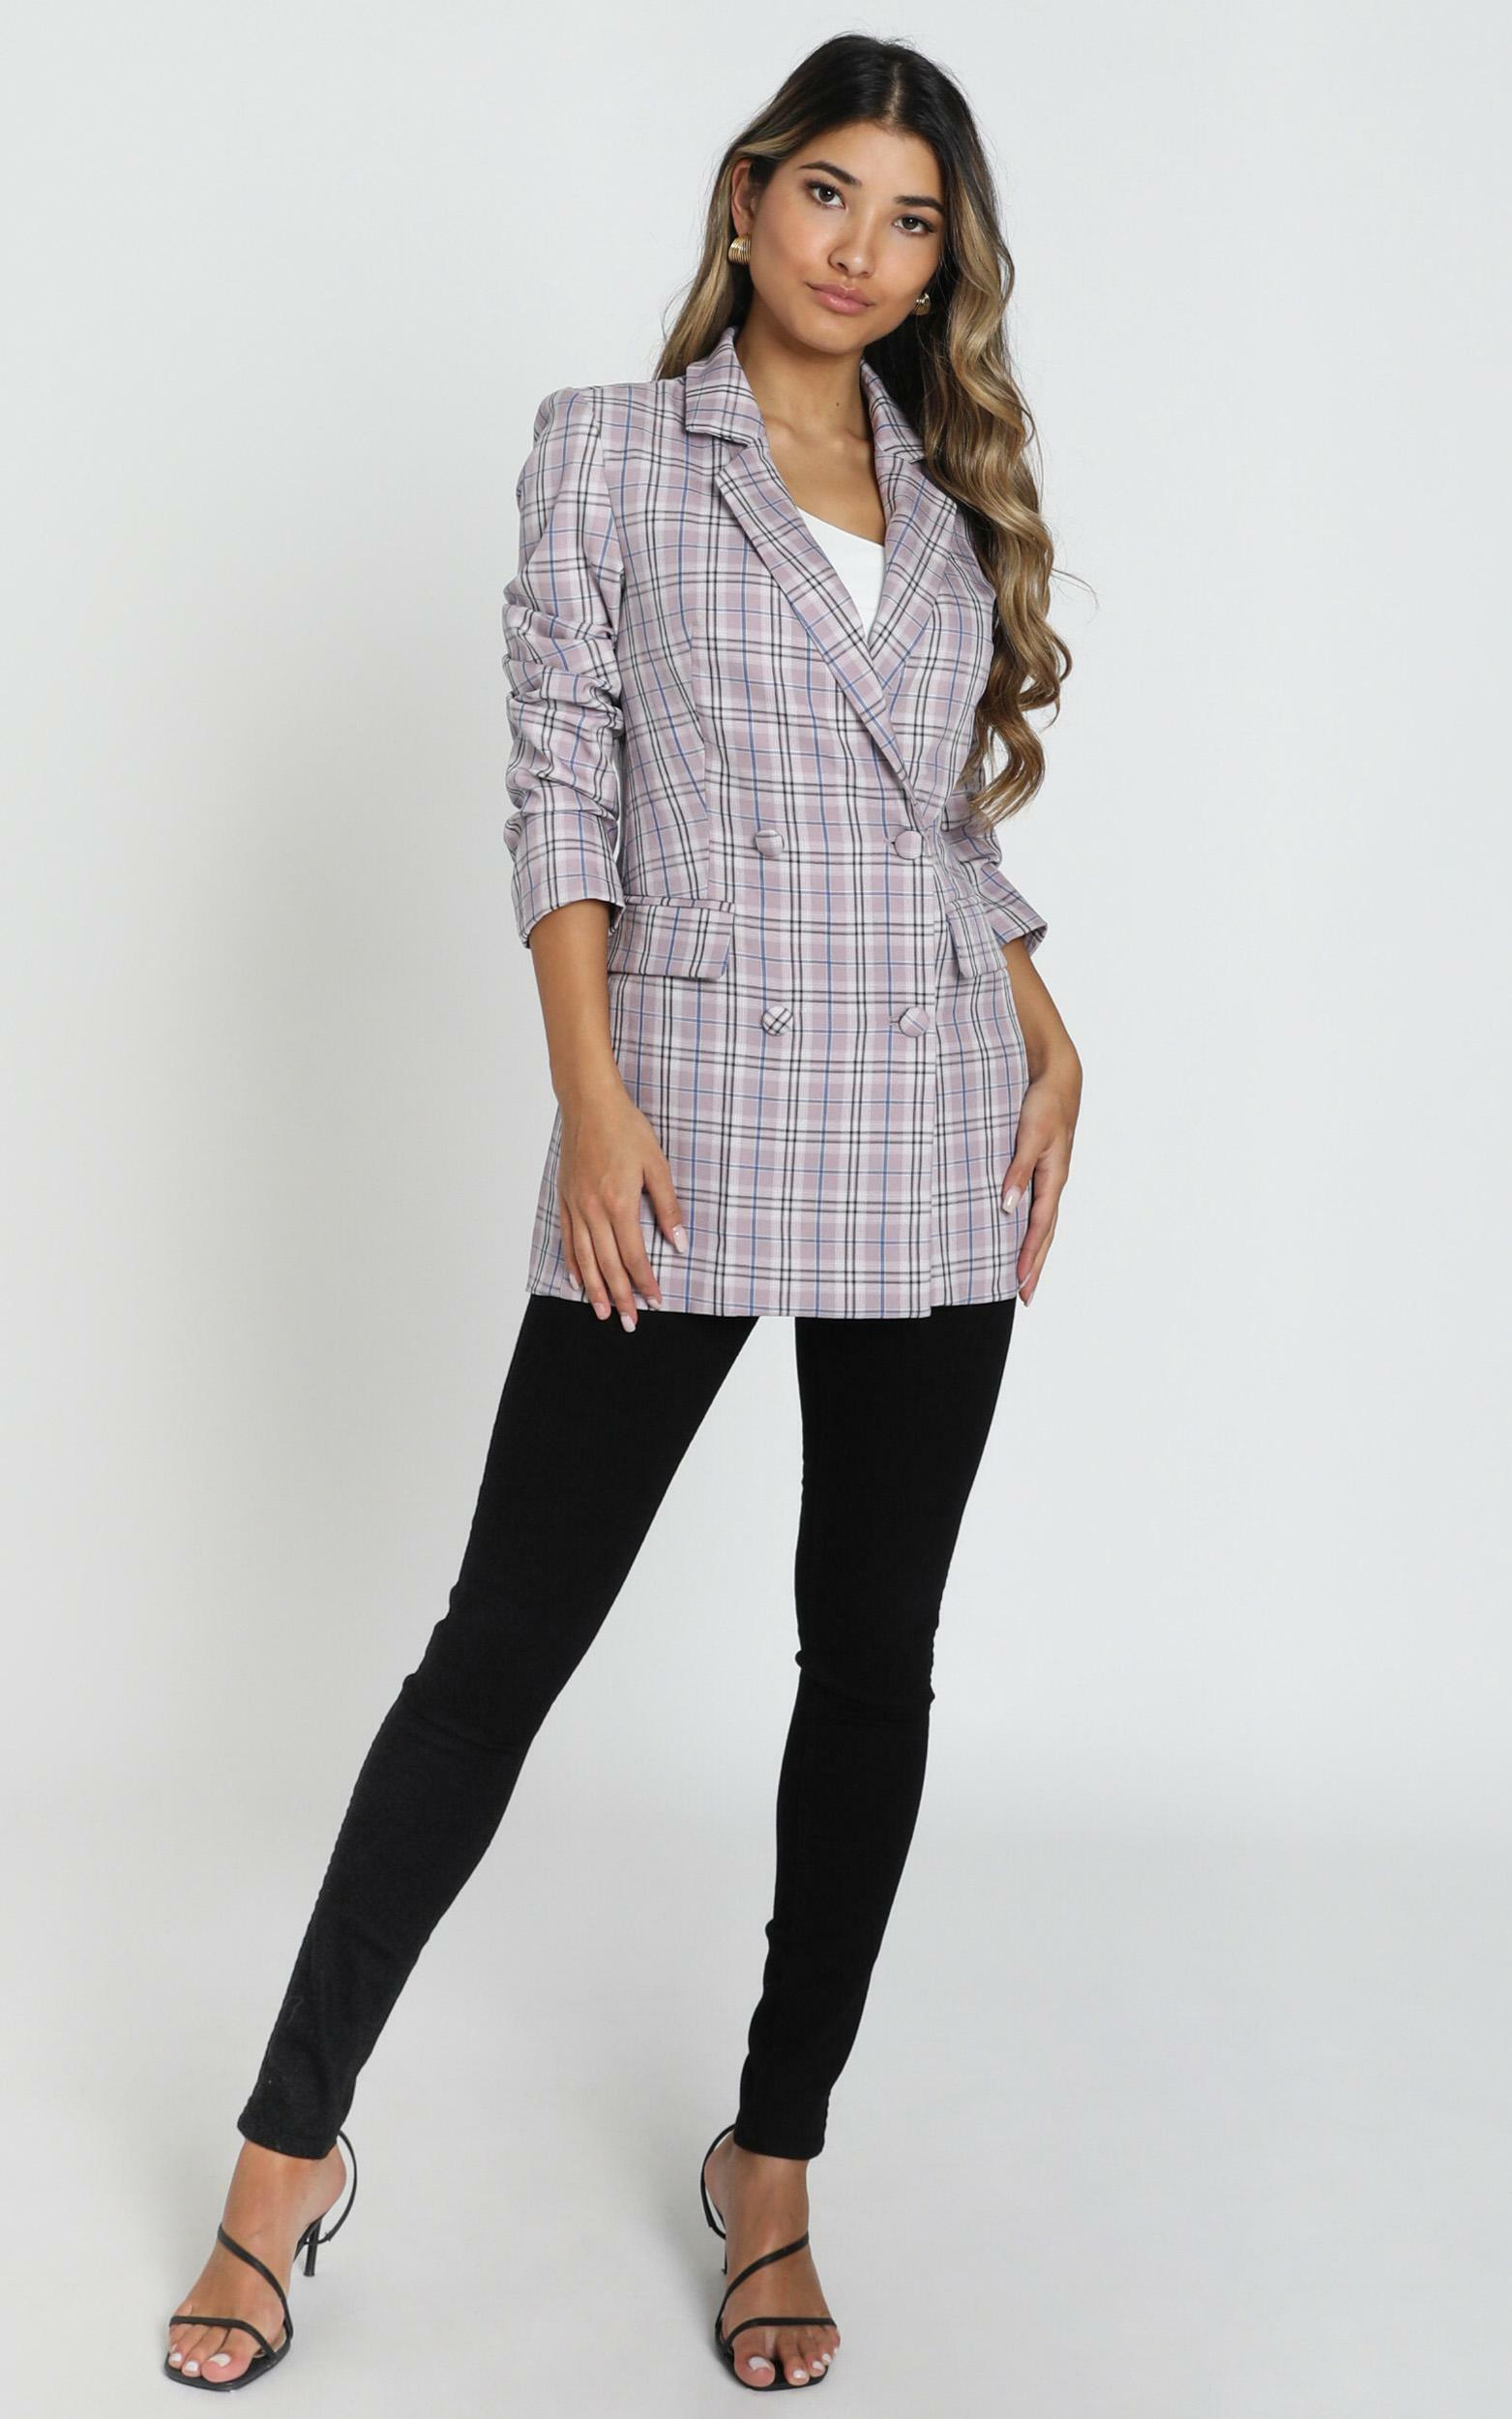 Sort It Out Blazer in Lilac Check - 14, PRP6, hi-res image number null